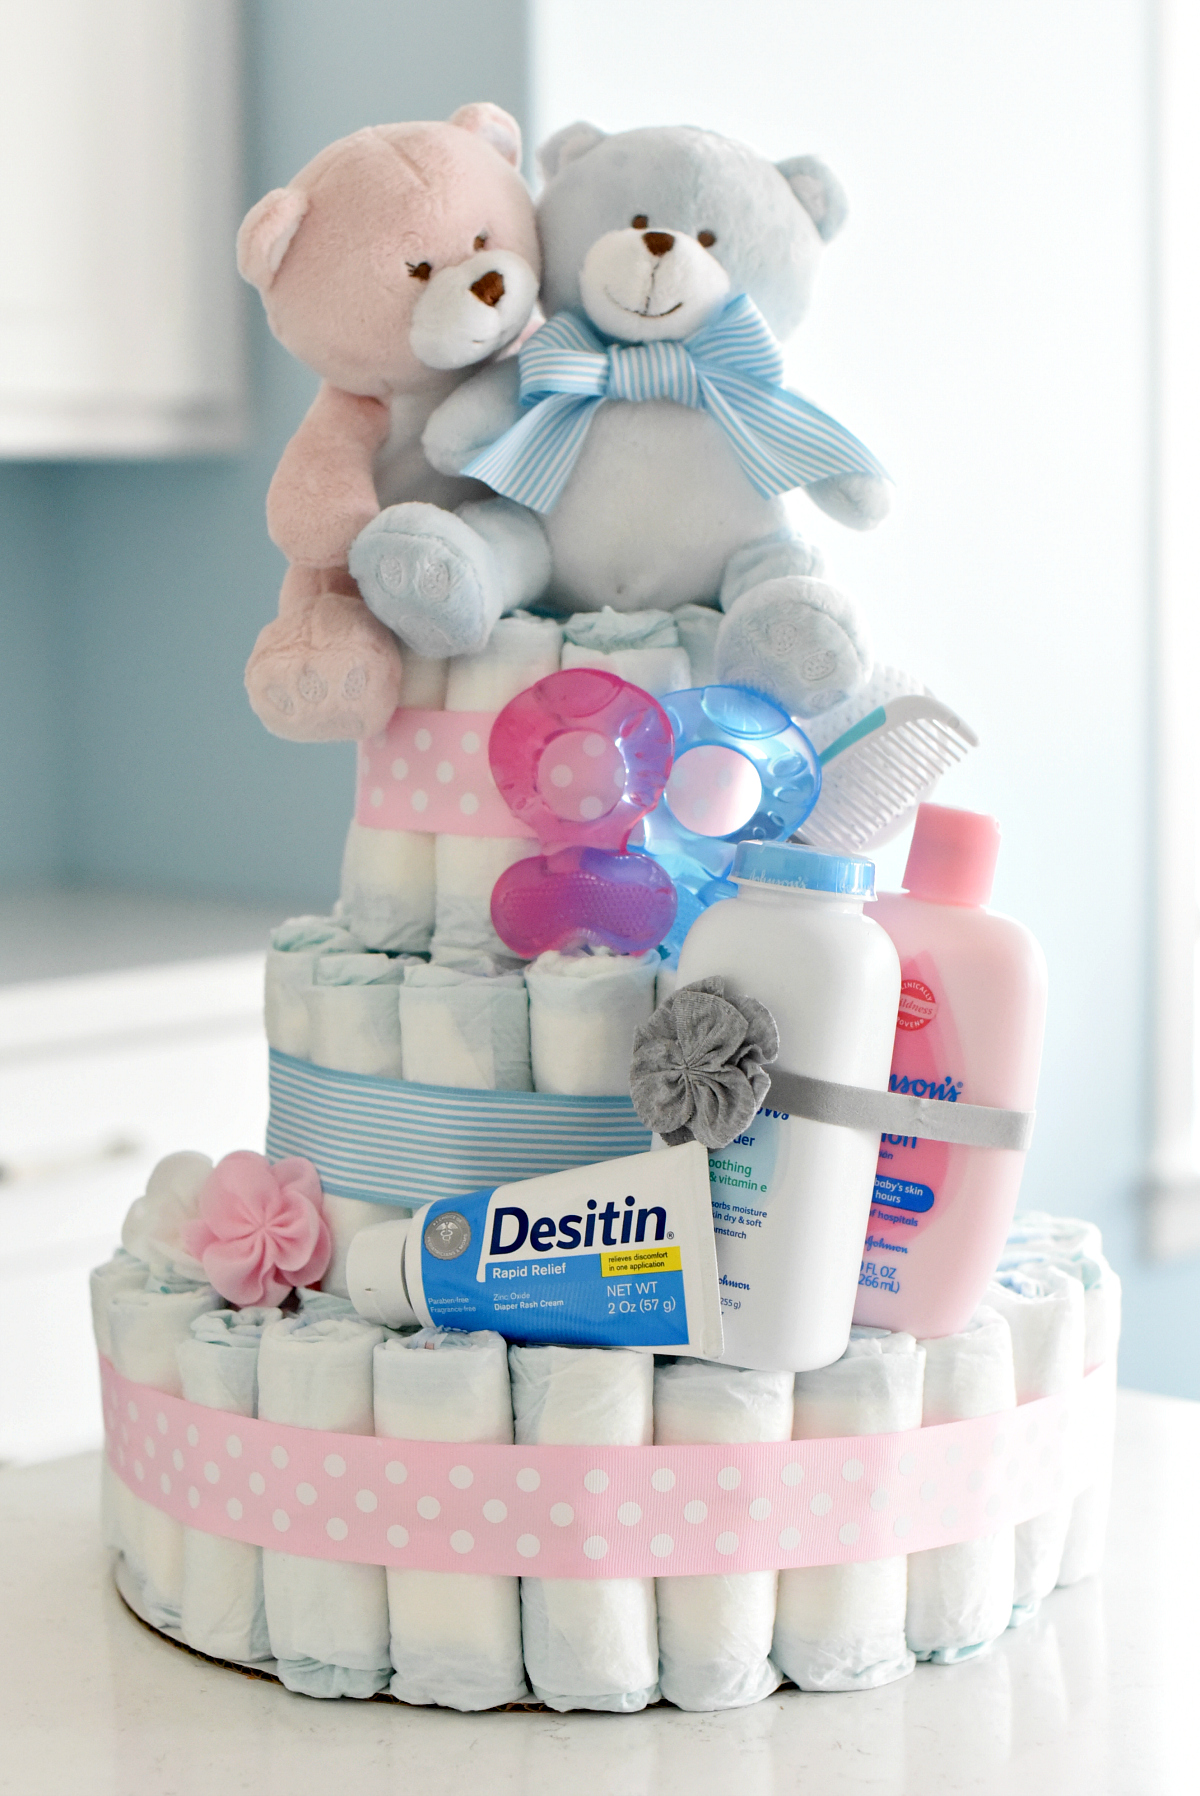 How To Make A Baby Diaper Cake Fun Squared